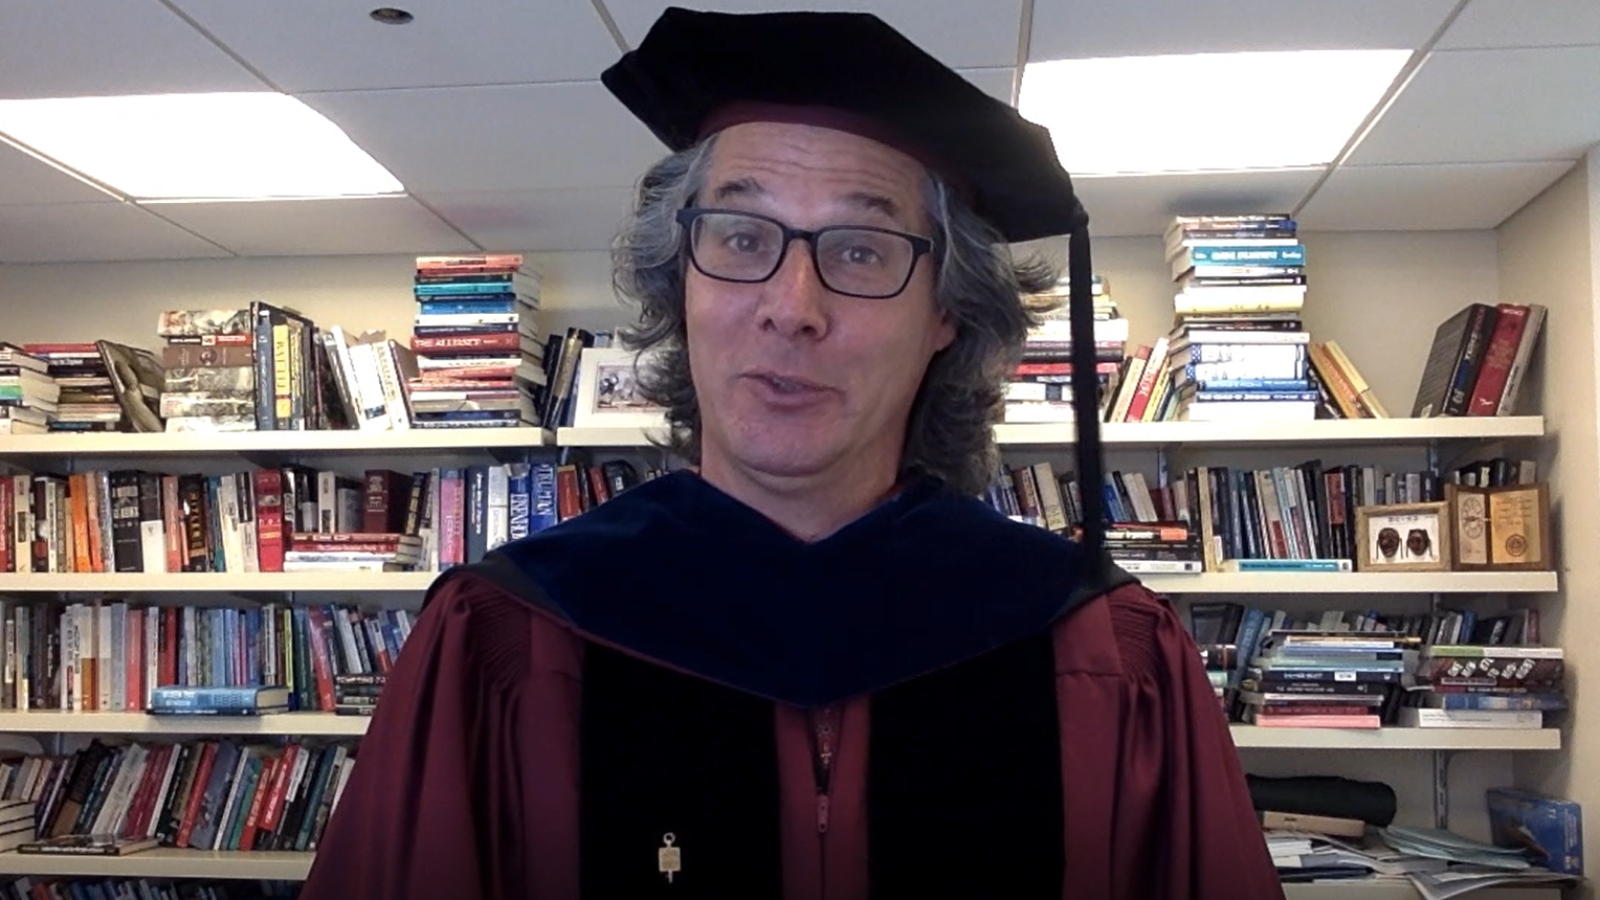 Dr. Keir Lieber, wearing academic regalia and speaking from his office